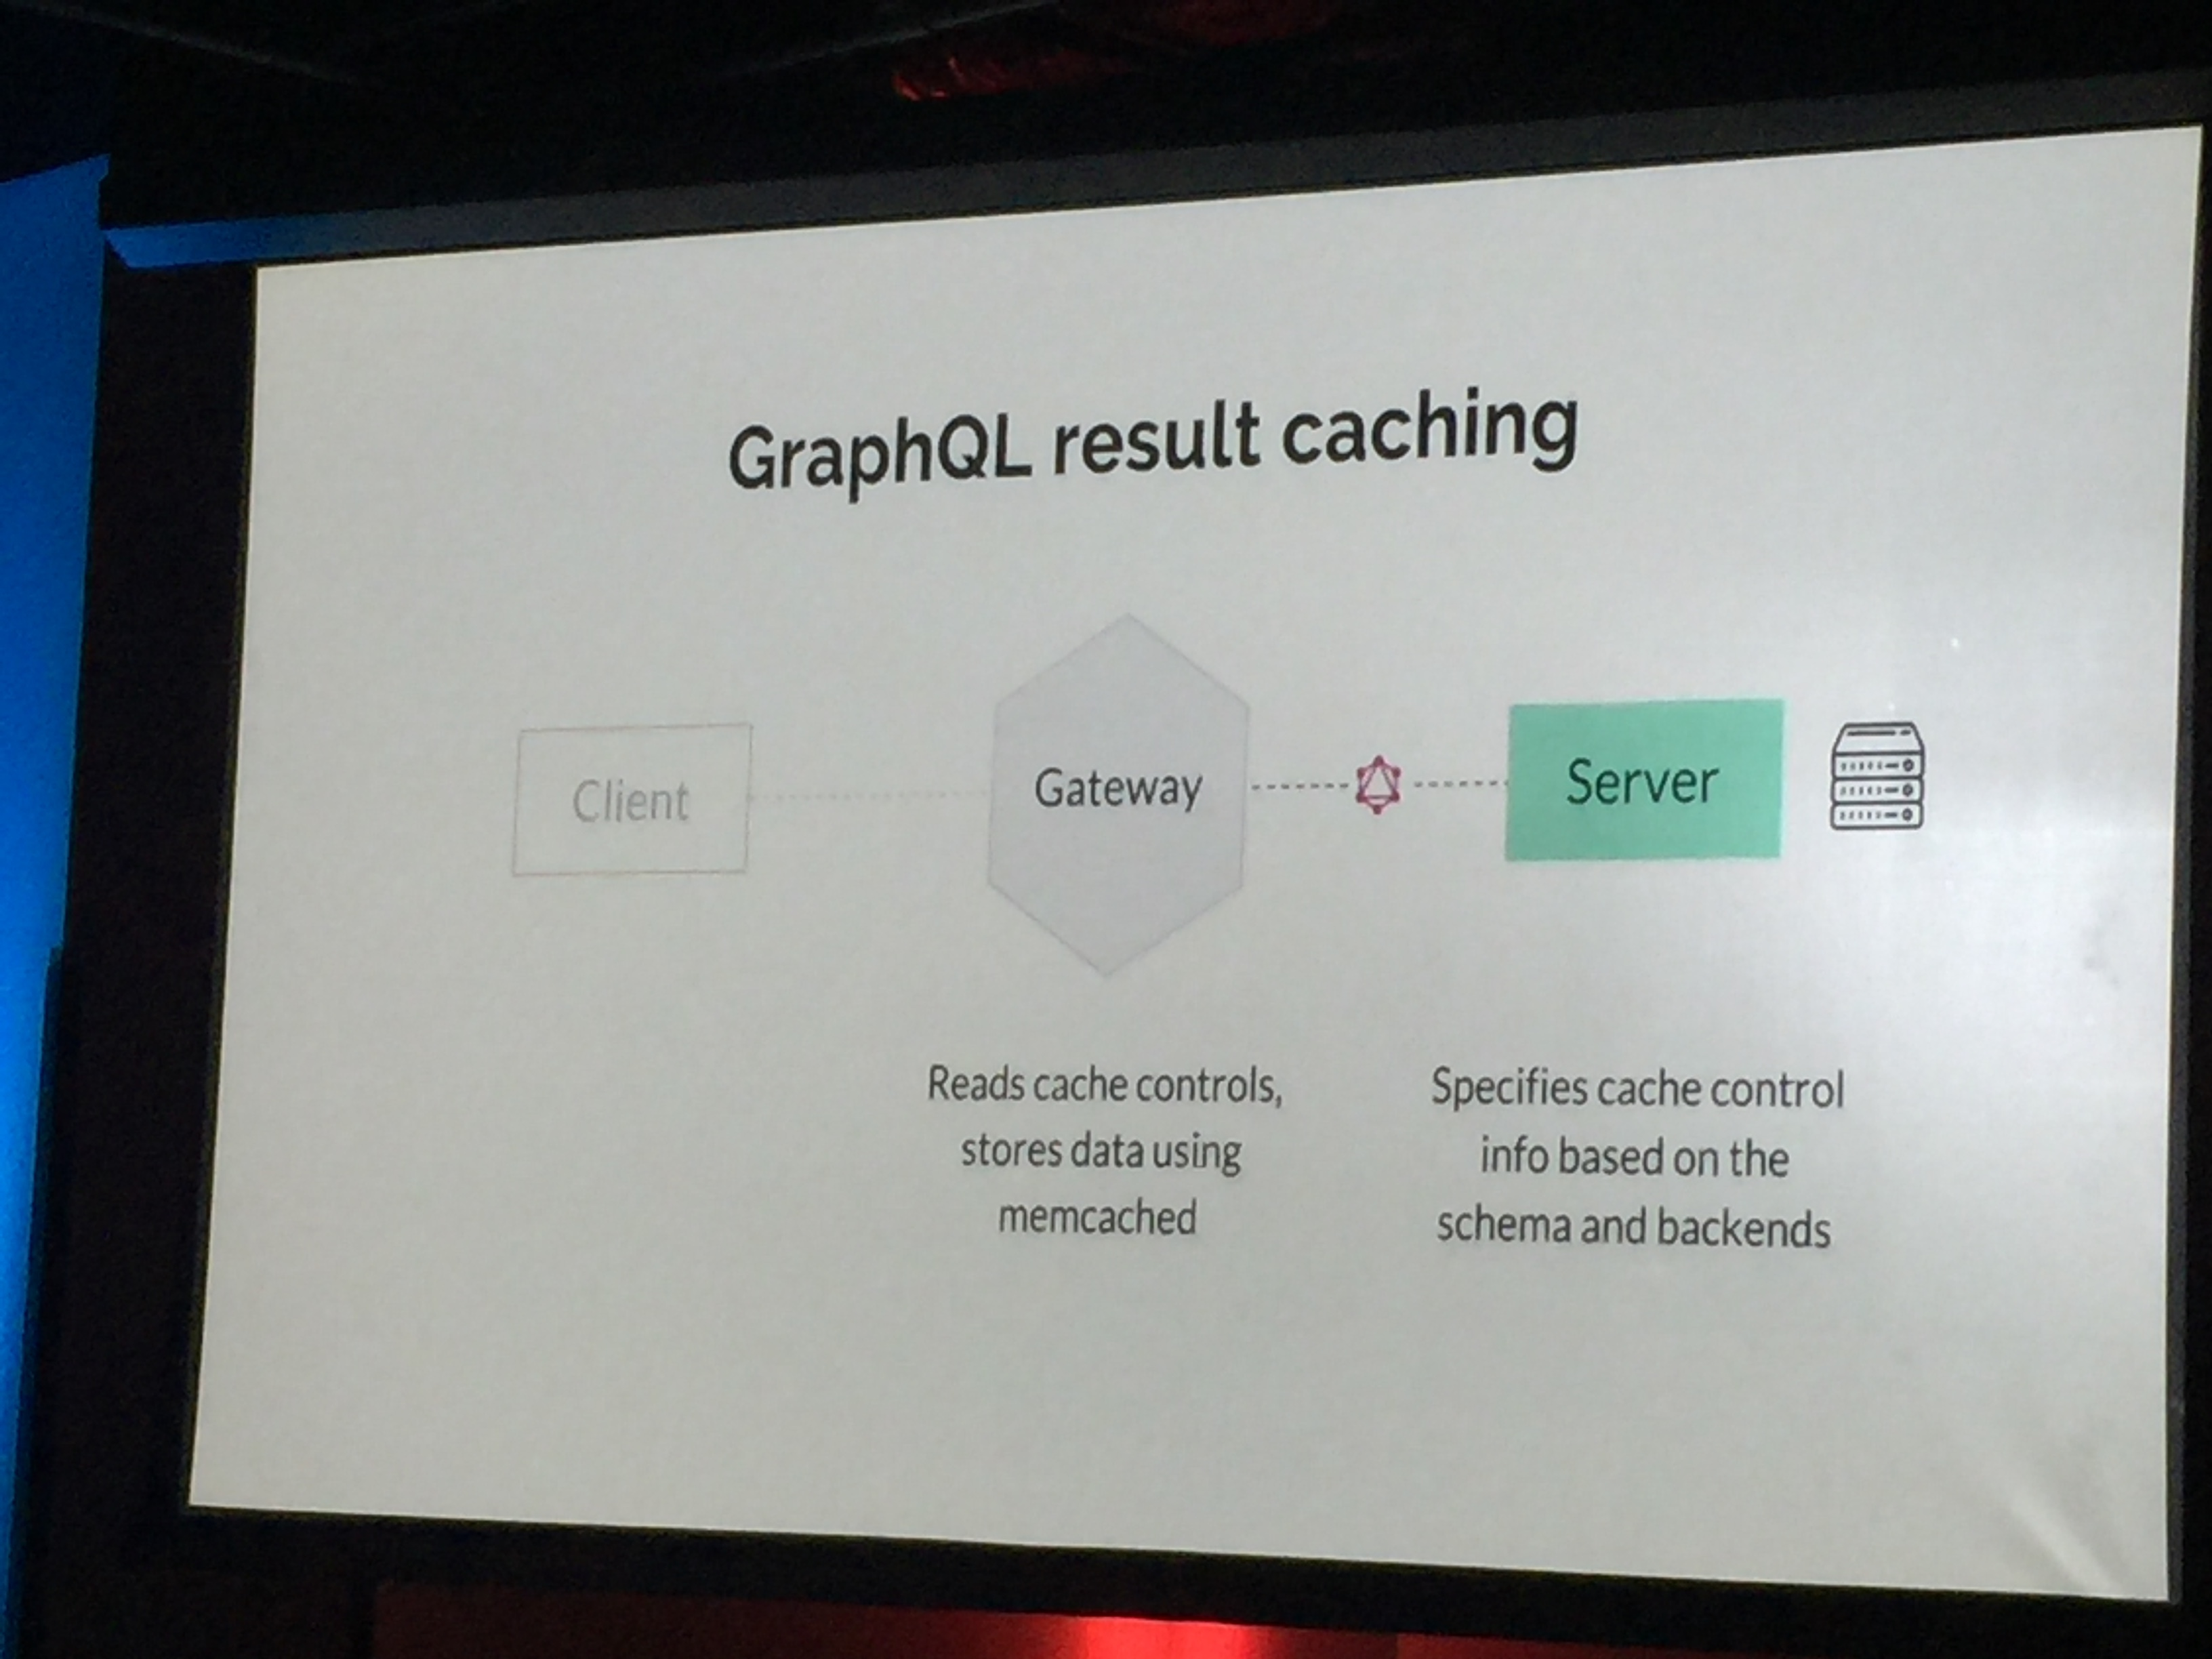 graphql-result-caching